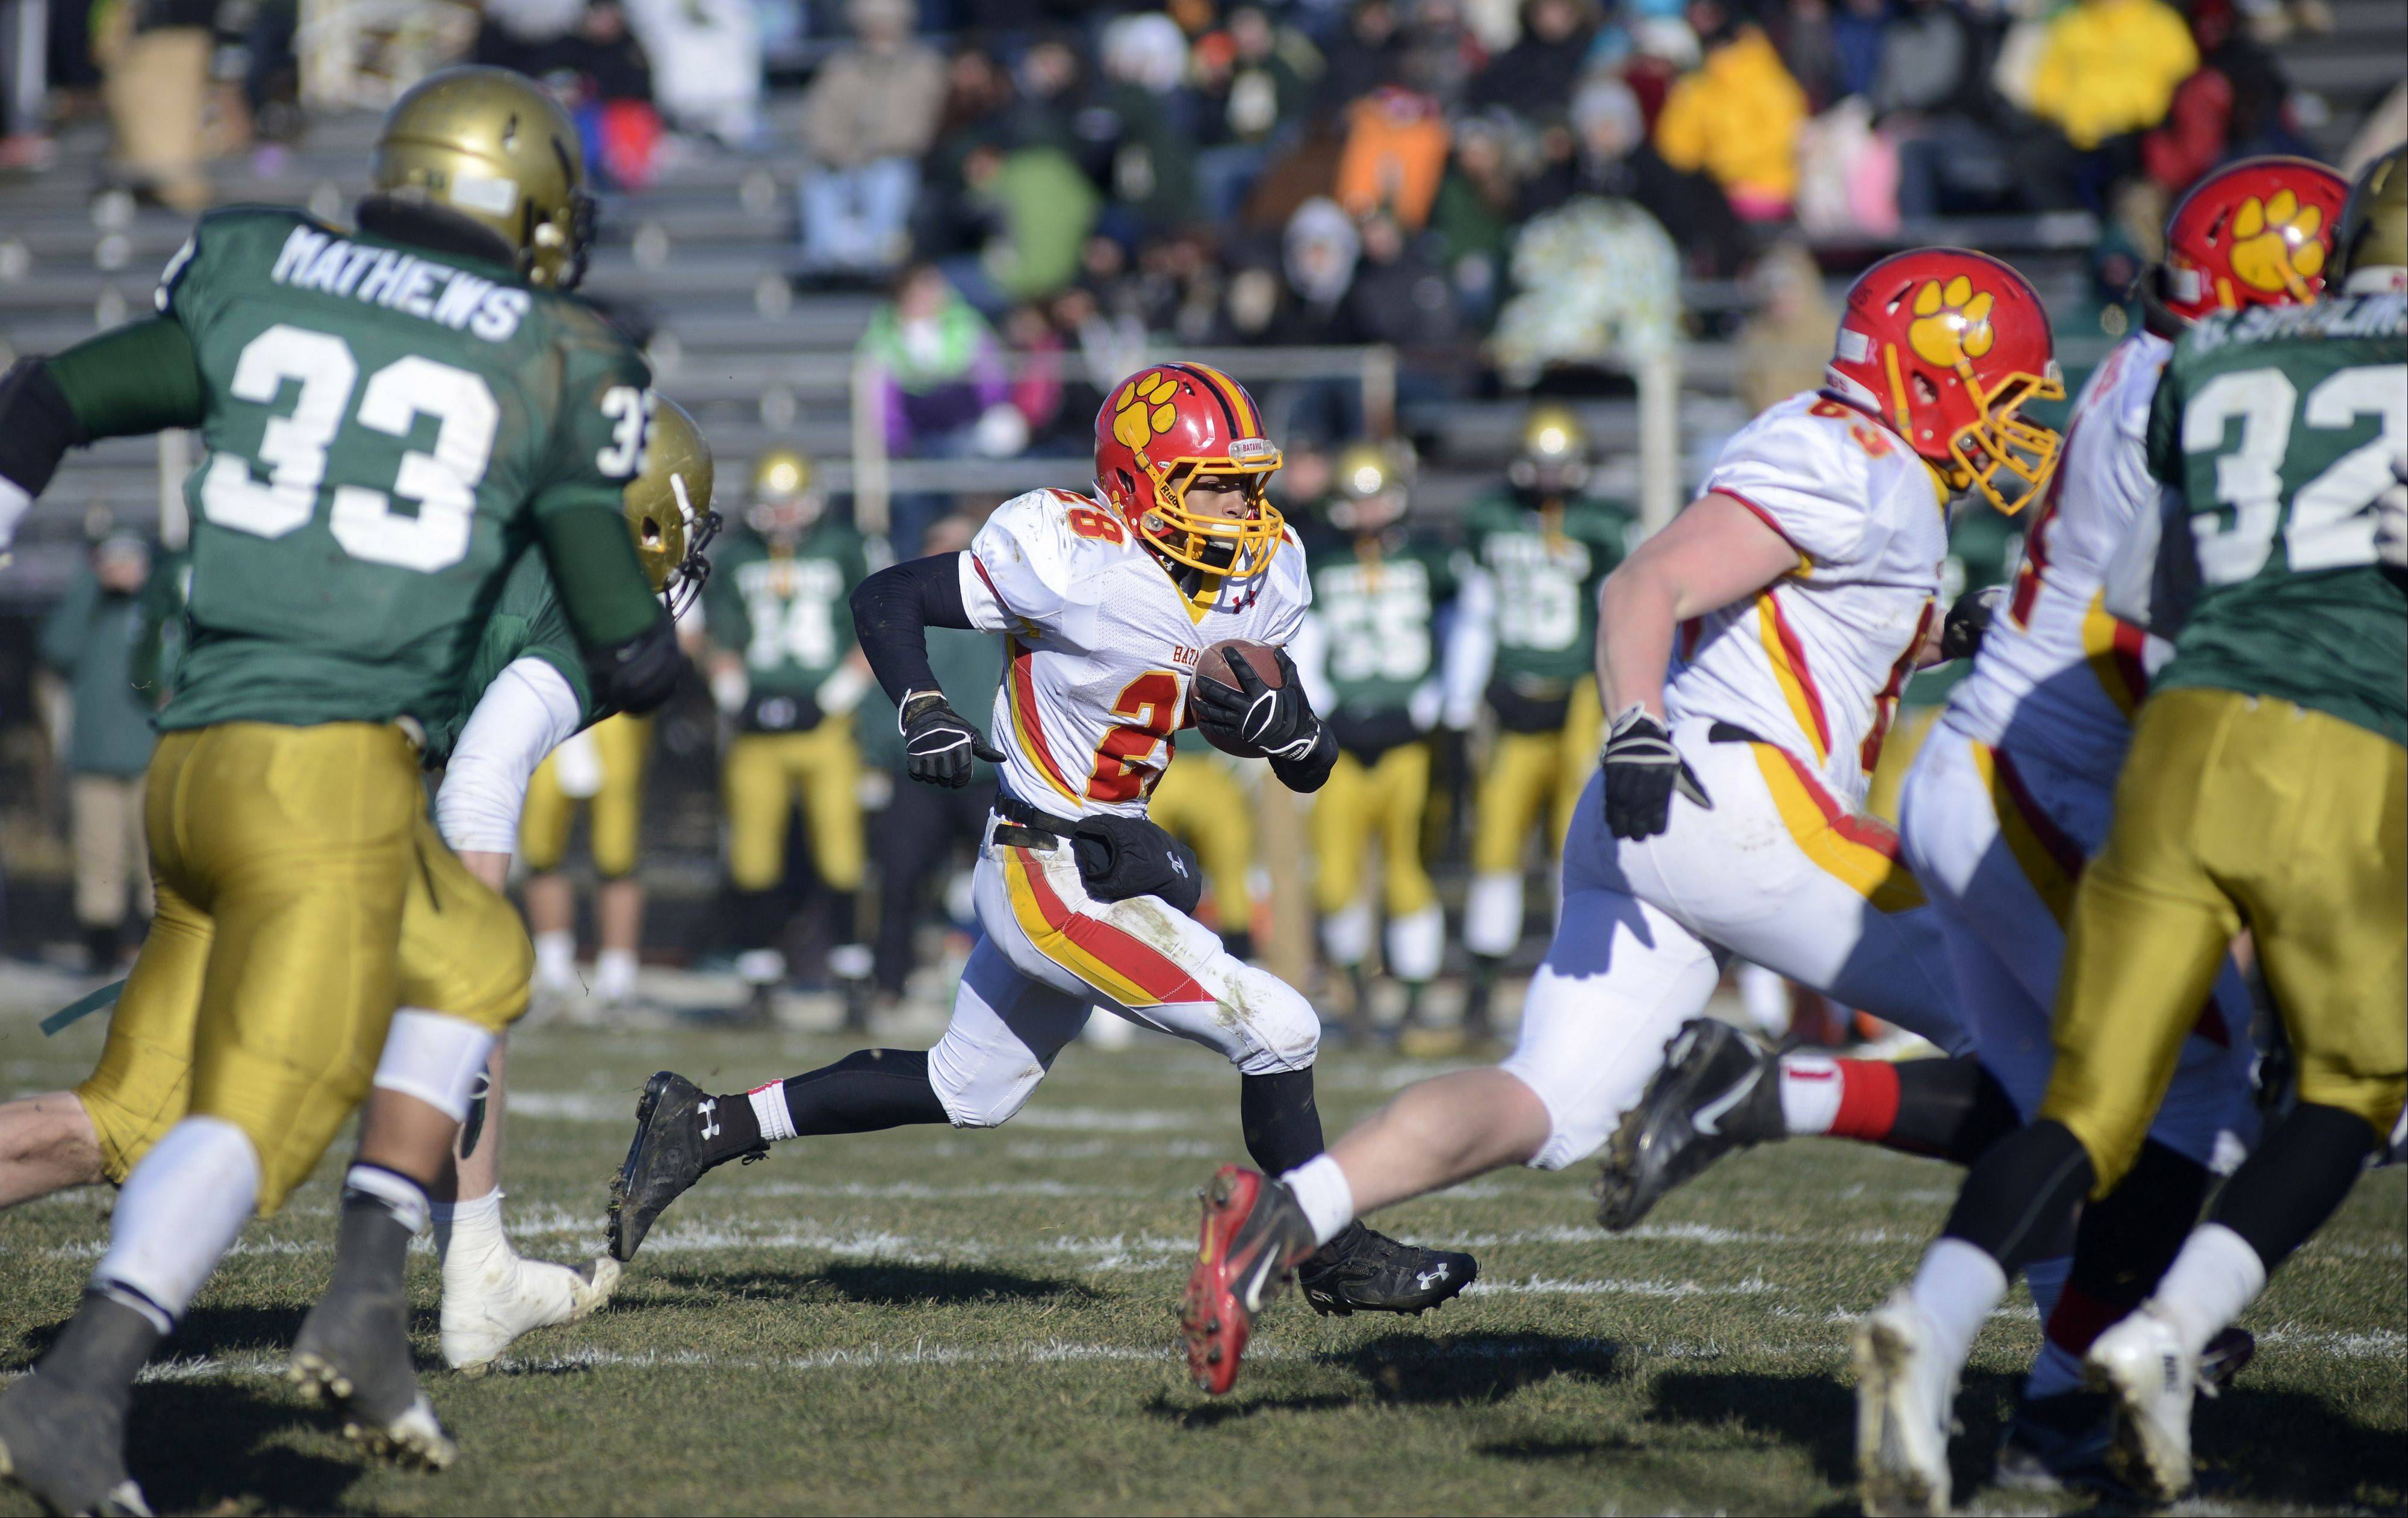 Batavia's Anthony Scaccia sprints down the field in the second quarter of Saturday's Class 6A semifinal game Saturday in Rockford. He scored three times and finished with 184 yards on 41 carries.